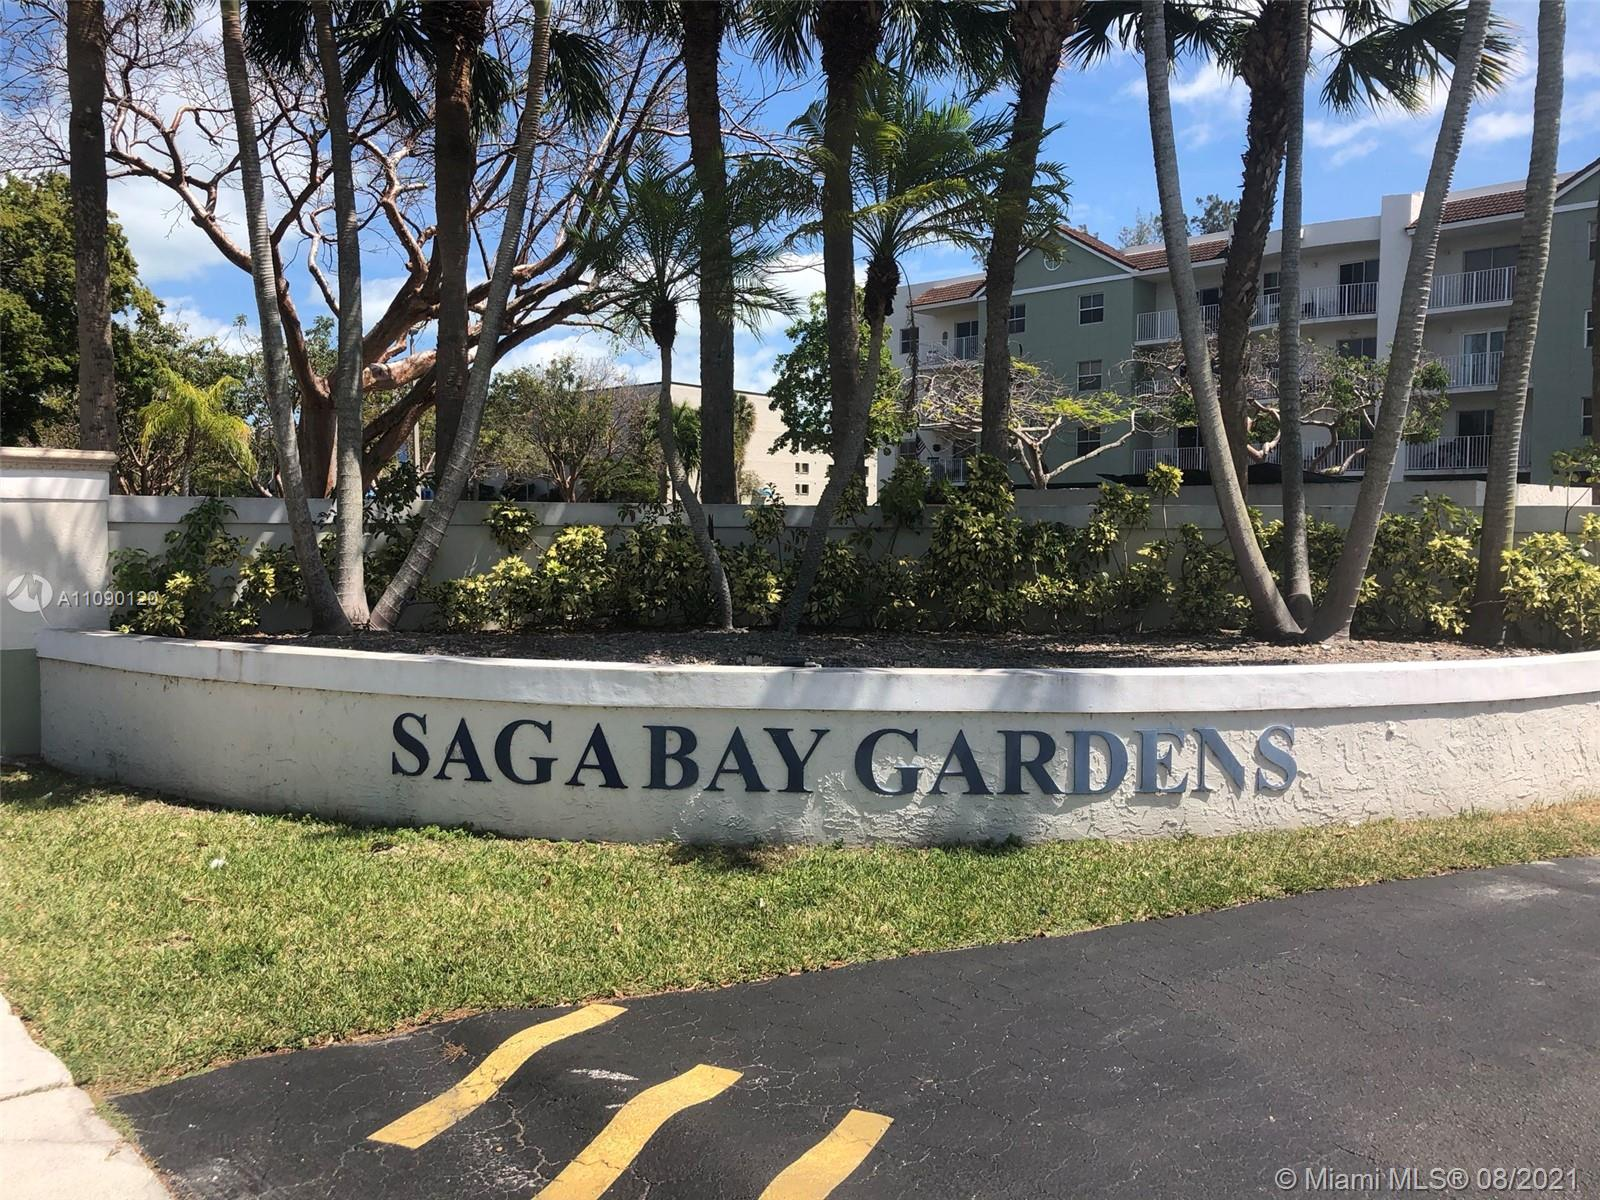 SAGA BAY GARDENS! Well maintained 2 bed, 2 bath unit is ready for immediate occupancy. Unit features an open floor plan with warm wood laminate flooring through out. Updated kitchen & baths, walk-in closet, balcony, a well maintained community with walking trails, community pool, gym, tennis court, beautiful lake views and 2 assigned covered parking spaces. Easy to show - please see broker remarks.